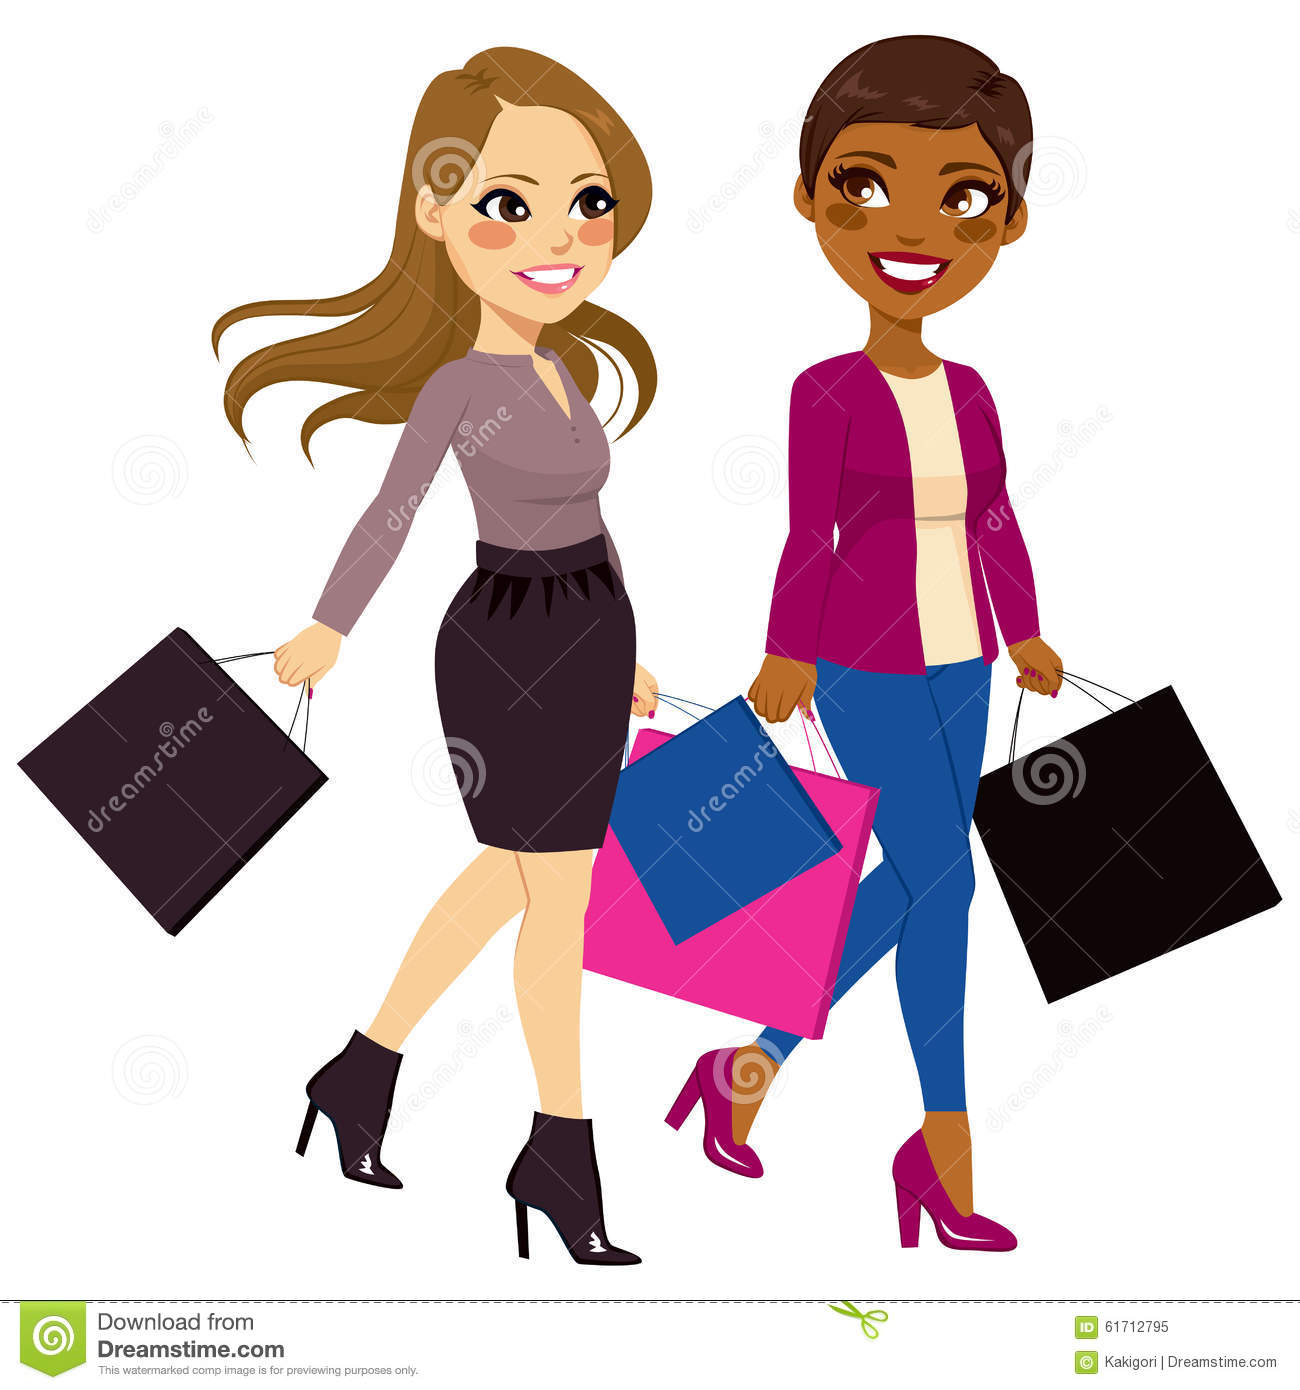 shopping best friend of women essay Friendships news, advice, lessons, breakups and opinion  why my best friend and i decided to move in together and co-mother our children  first-person essays, features, interviews and q&as .